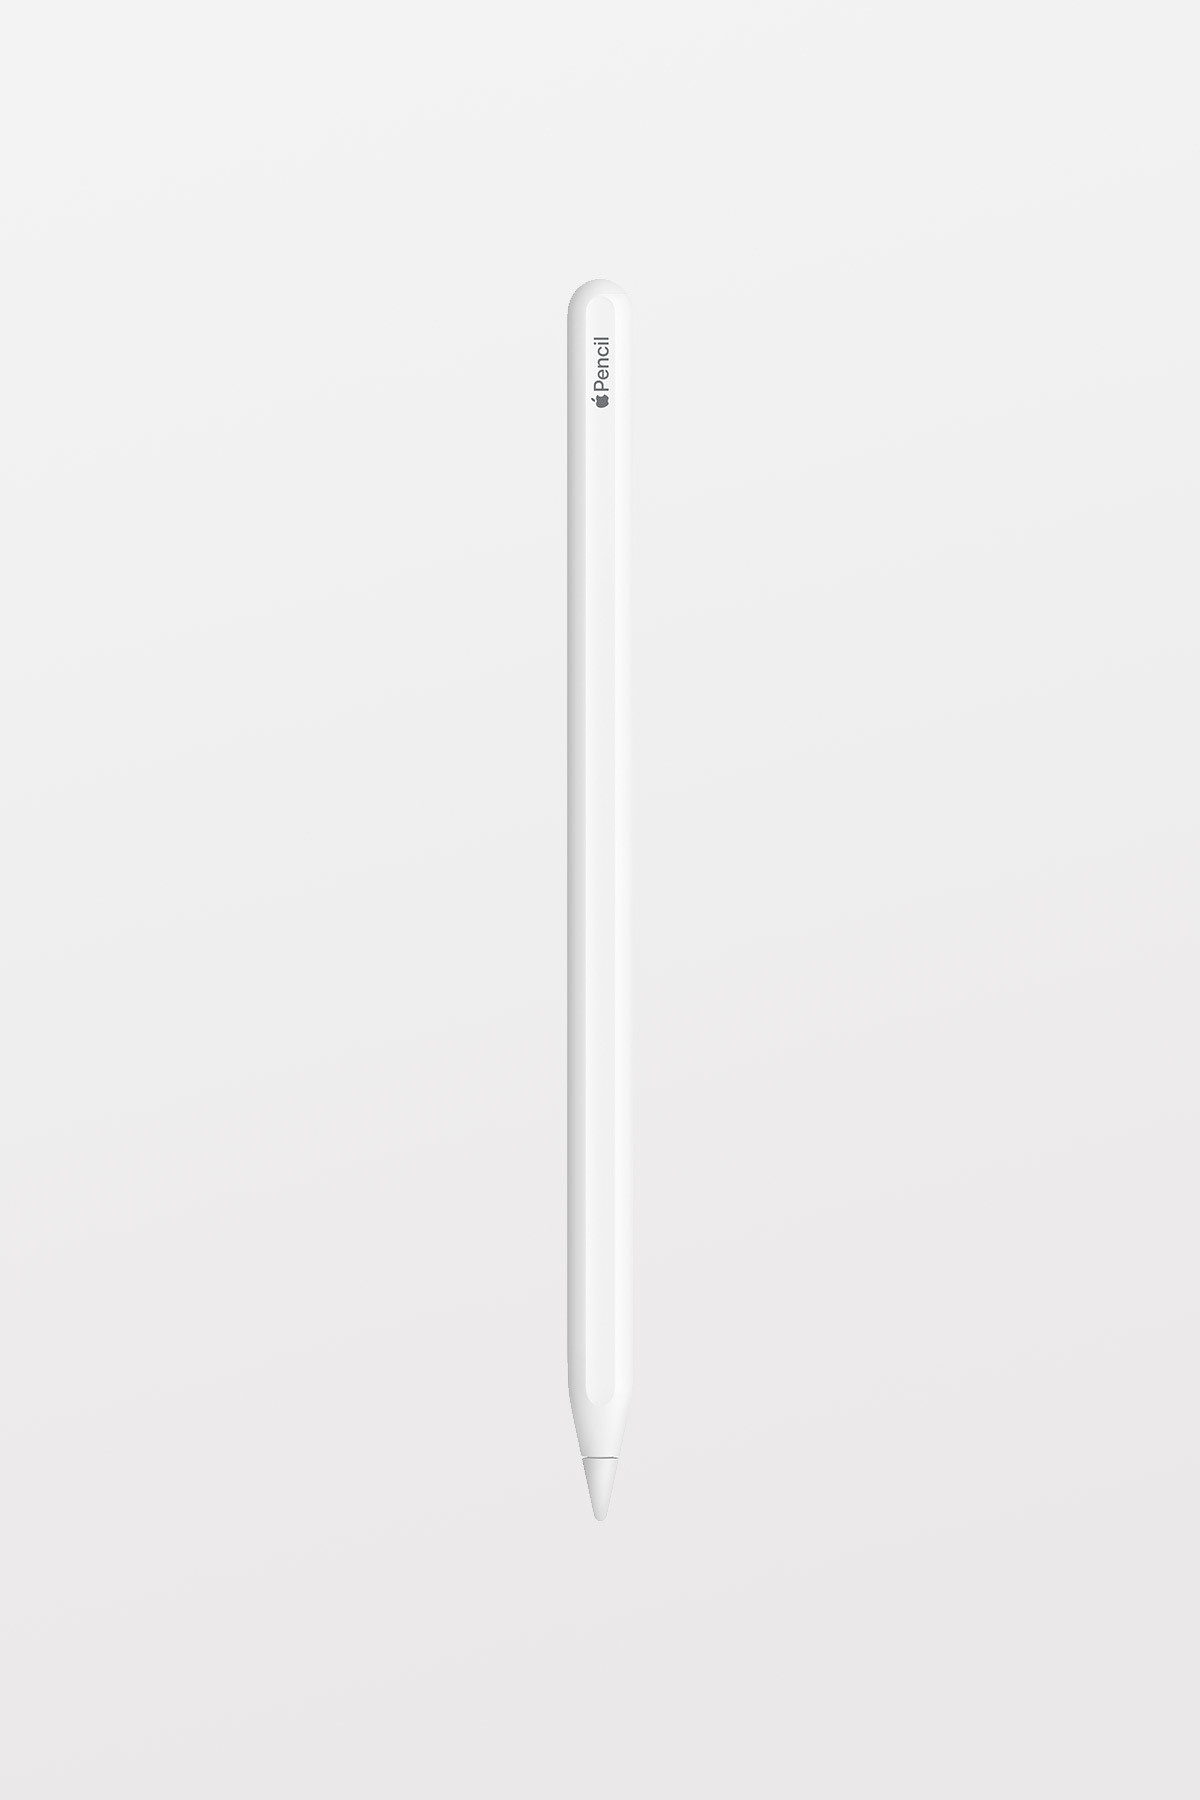 Apple Pencil (2ND GEN) FOR iPad PRO 11IN/ 3RD GEN 12.9IN / AIR 4TH GEN